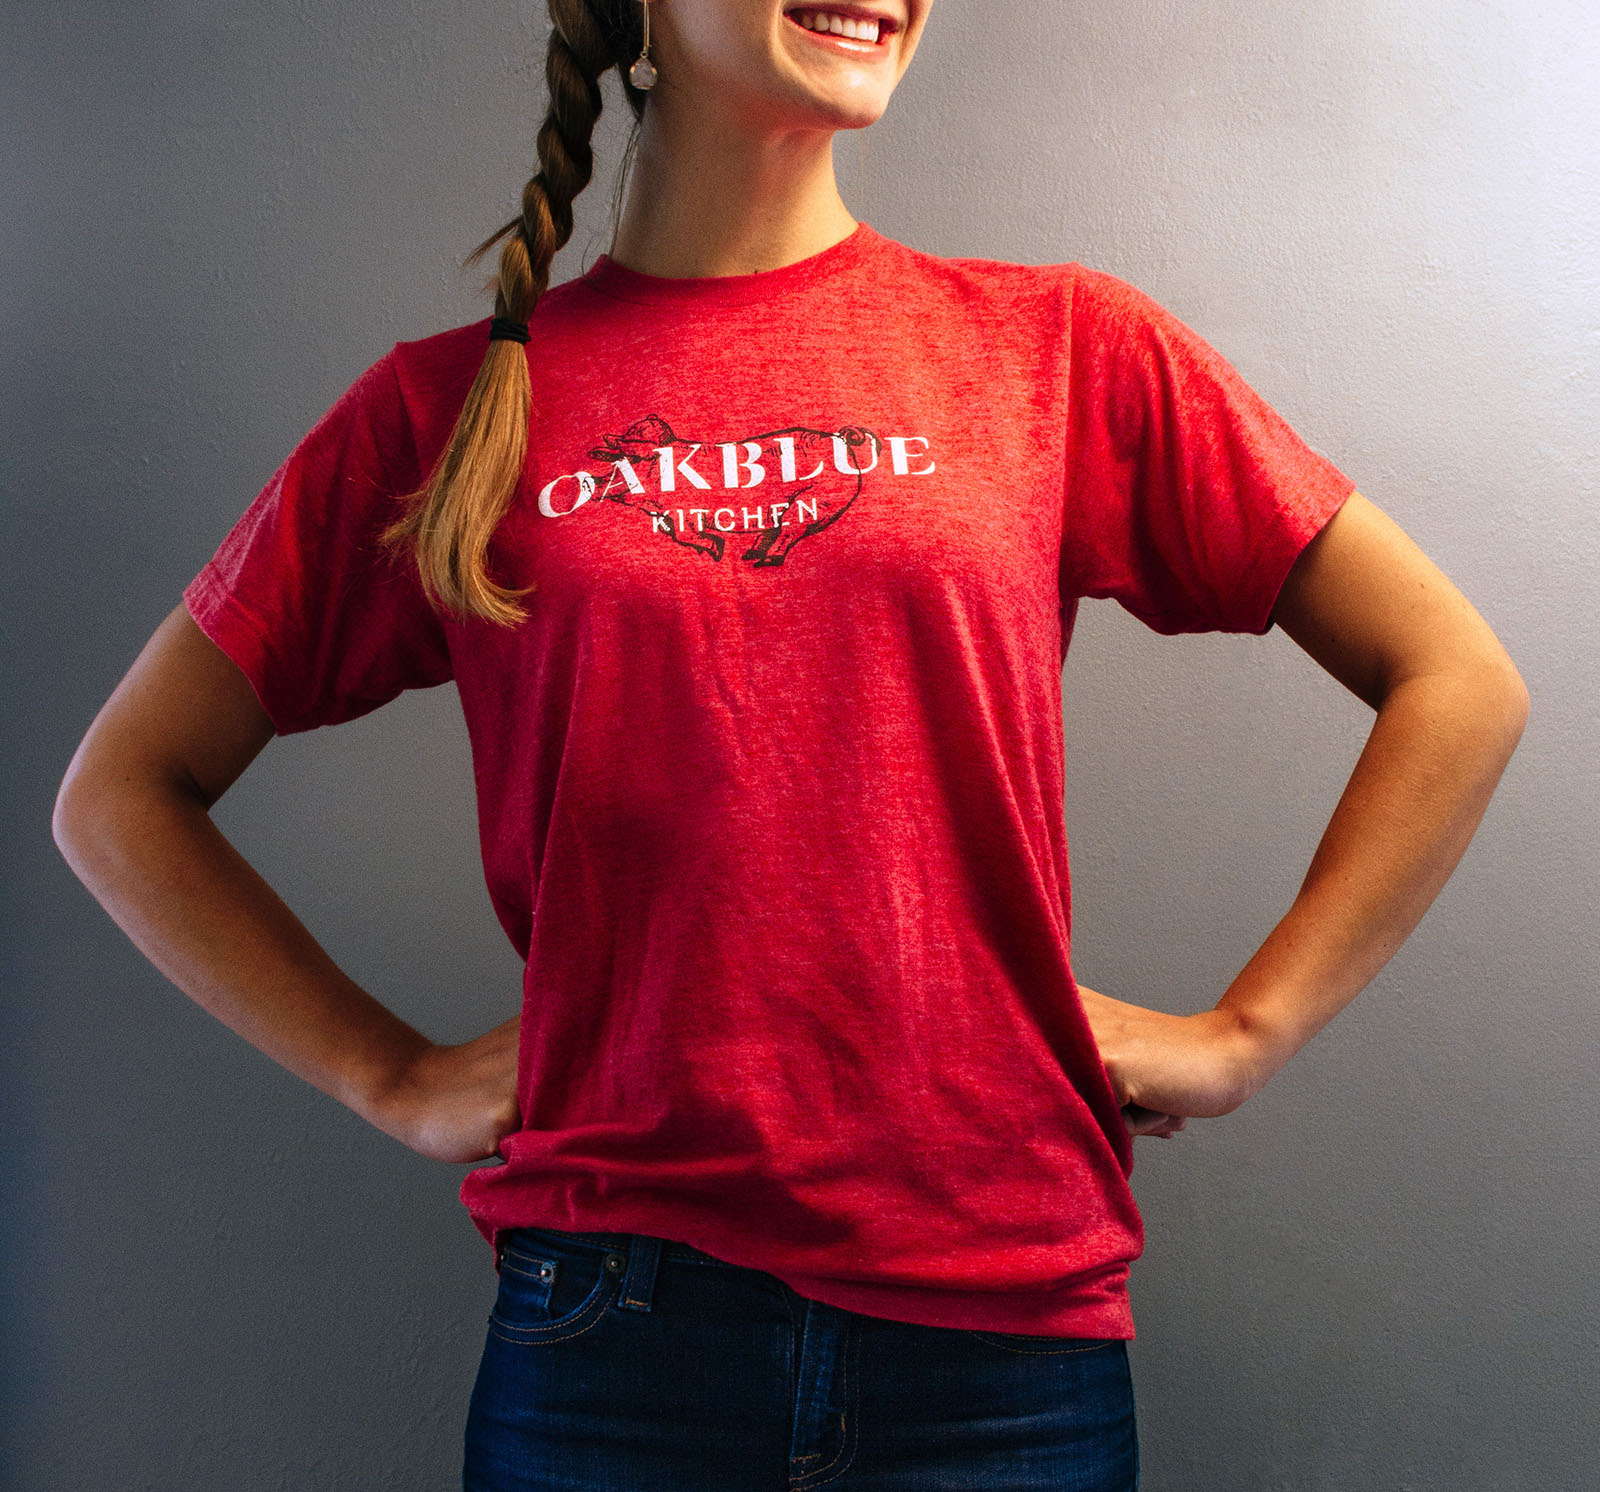 A woman wears the t shirt design for restaurant Oakblue Kitchen with custom logo in white over hand drawn barbecue pig illustration on a heathered textured red shirt.